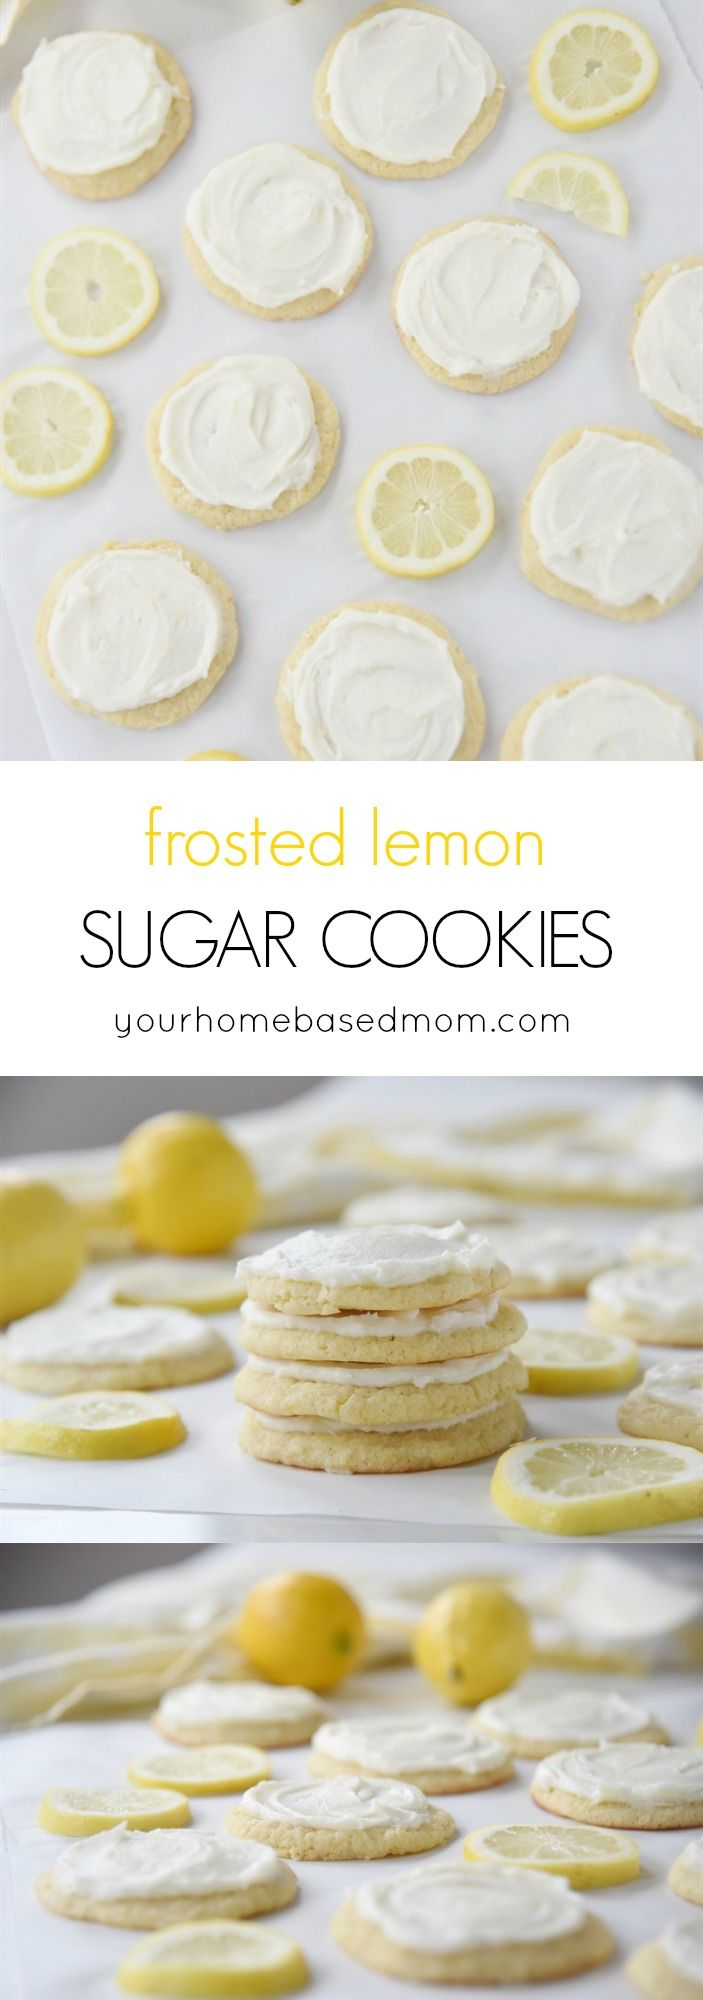 The addition of lemon juice and lemon zest to these frosted lemon sugar cookies is like enjoying a tall glass of lemonade on a warm summer day!